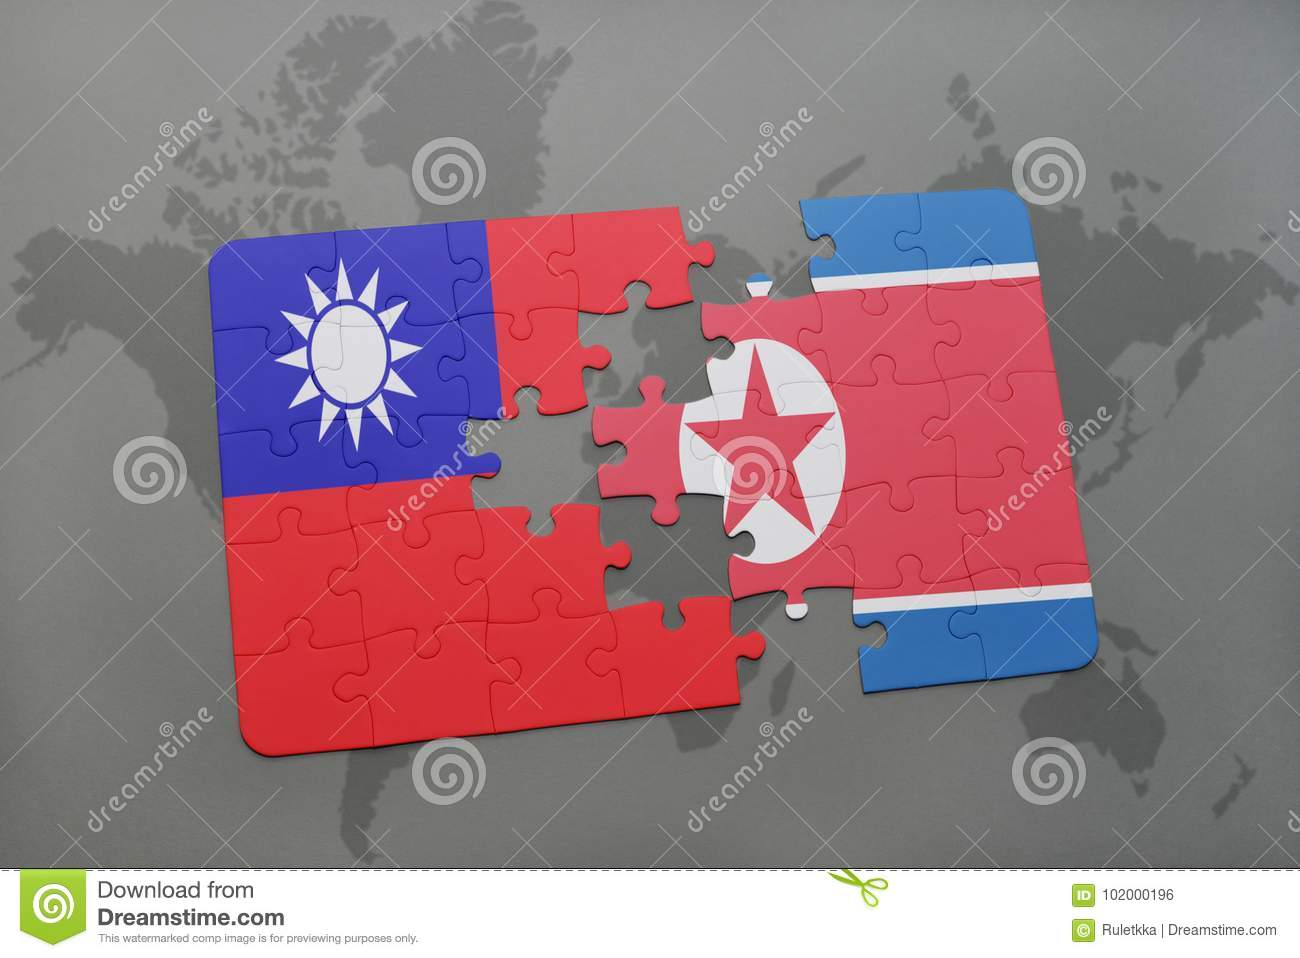 Puzzle with the national flag of taiwan and north korea on a world download puzzle with the national flag of taiwan and north korea on a world map background gumiabroncs